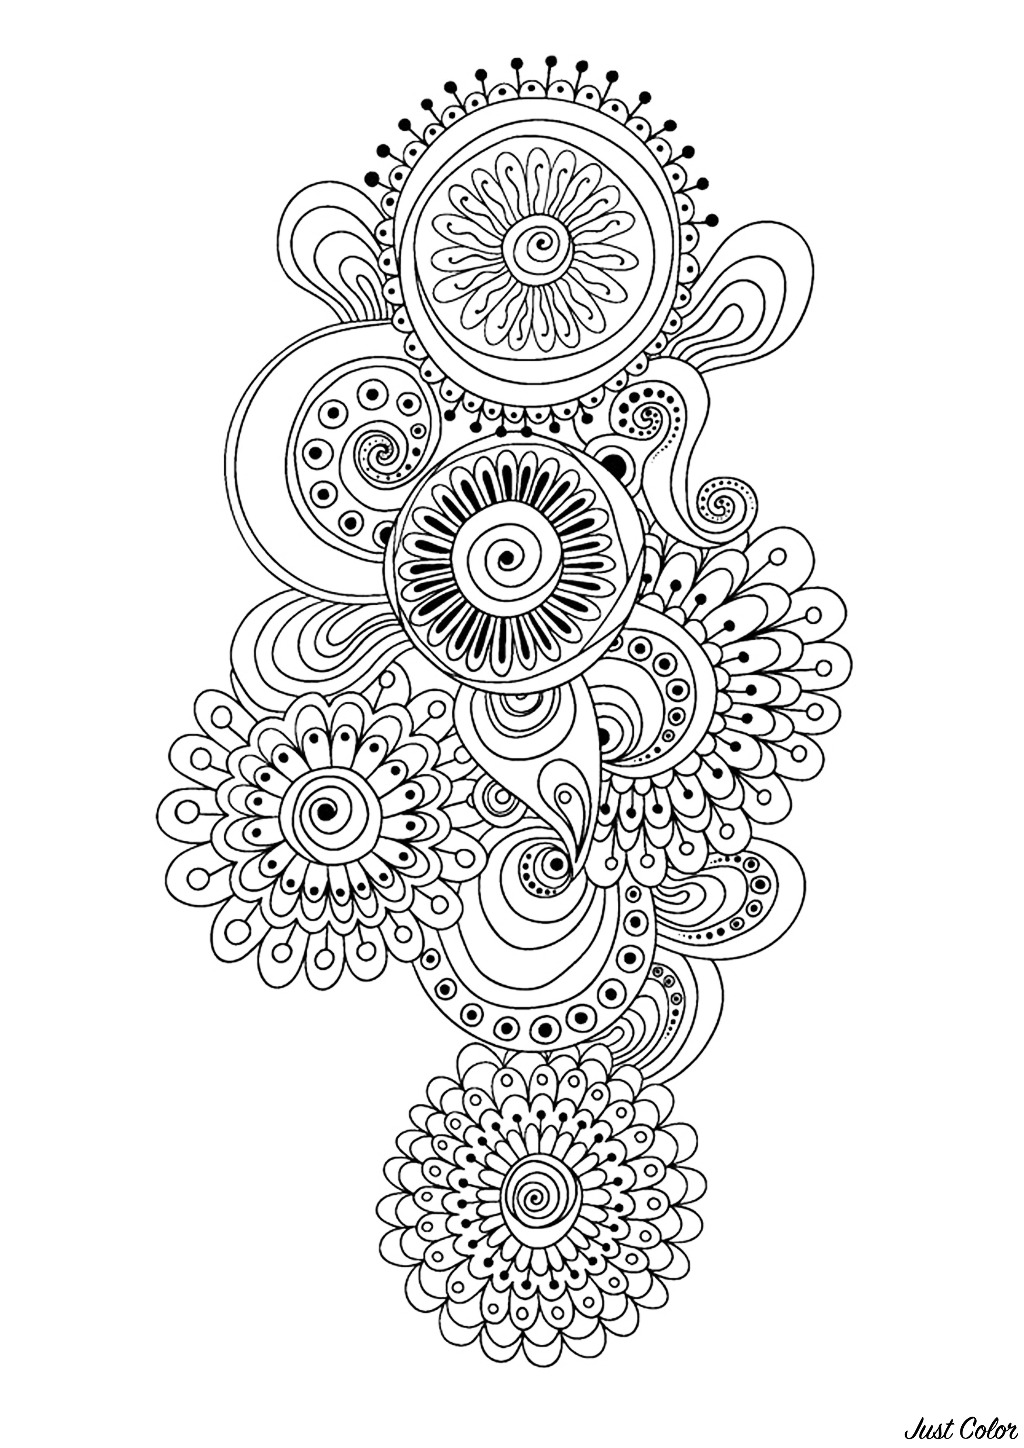 Zen & Anti-stress Coloring page : Abstract pattern inspired by flowers : n°10